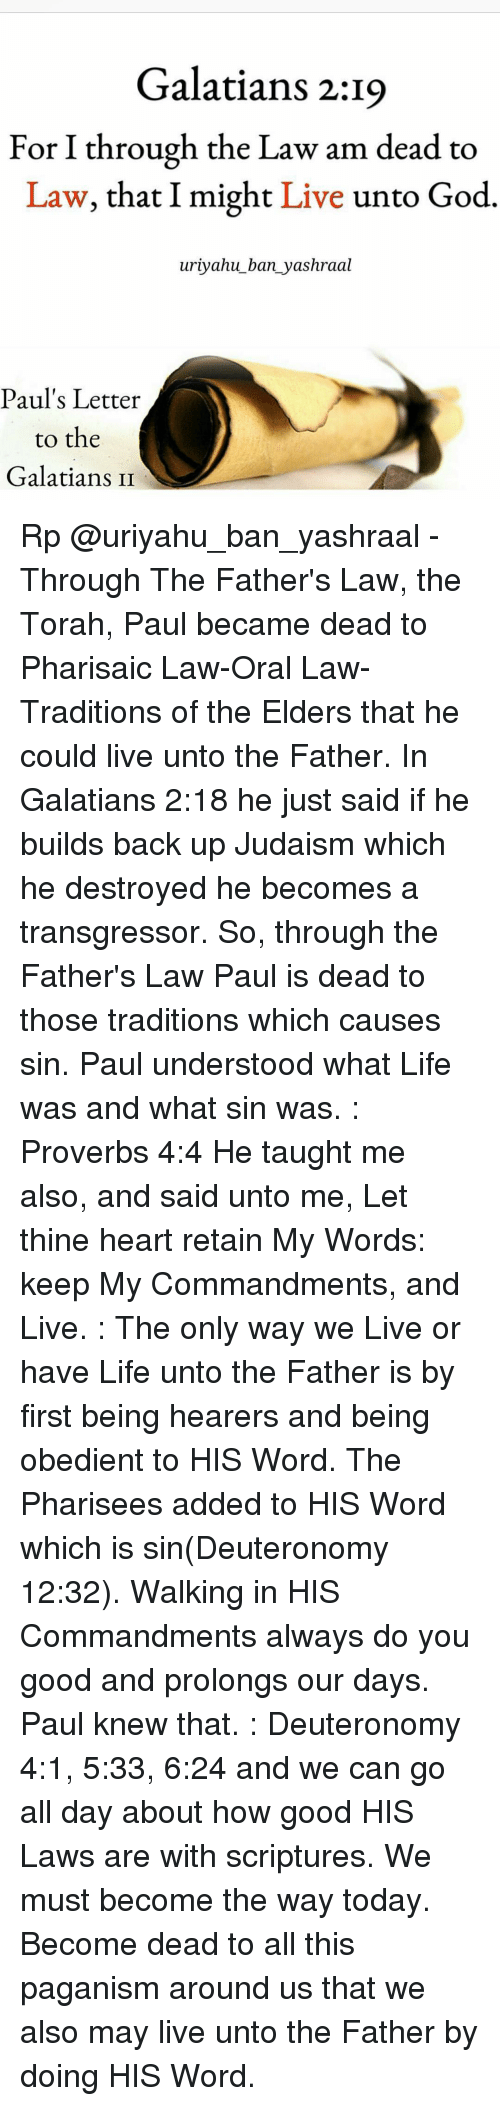 Memes, Obedience, and 🤖: Galatians 2:19  For I through the Law am dead to  Law, that I might  Live  unto God  uriyahu ban yashraal  Paul's Letter  to the  Galatians II Rp @uriyahu_ban_yashraal - Through The Father's Law, the Torah, Paul became dead to Pharisaic Law-Oral Law-Traditions of the Elders that he could live unto the Father. In Galatians 2:18 he just said if he builds back up Judaism which he destroyed he becomes a transgressor. So, through the Father's Law Paul is dead to those traditions which causes sin. Paul understood what Life was and what sin was. : Proverbs 4:4 He taught me also, and said unto me, Let thine heart retain My Words: keep My Commandments, and Live. : The only way we Live or have Life unto the Father is by first being hearers and being obedient to HIS Word. The Pharisees added to HIS Word which is sin(Deuteronomy 12:32). Walking in HIS Commandments always do you good and prolongs our days. Paul knew that. : Deuteronomy 4:1, 5:33, 6:24 and we can go all day about how good HIS Laws are with scriptures. We must become the way today. Become dead to all this paganism around us that we also may live unto the Father by doing HIS Word.